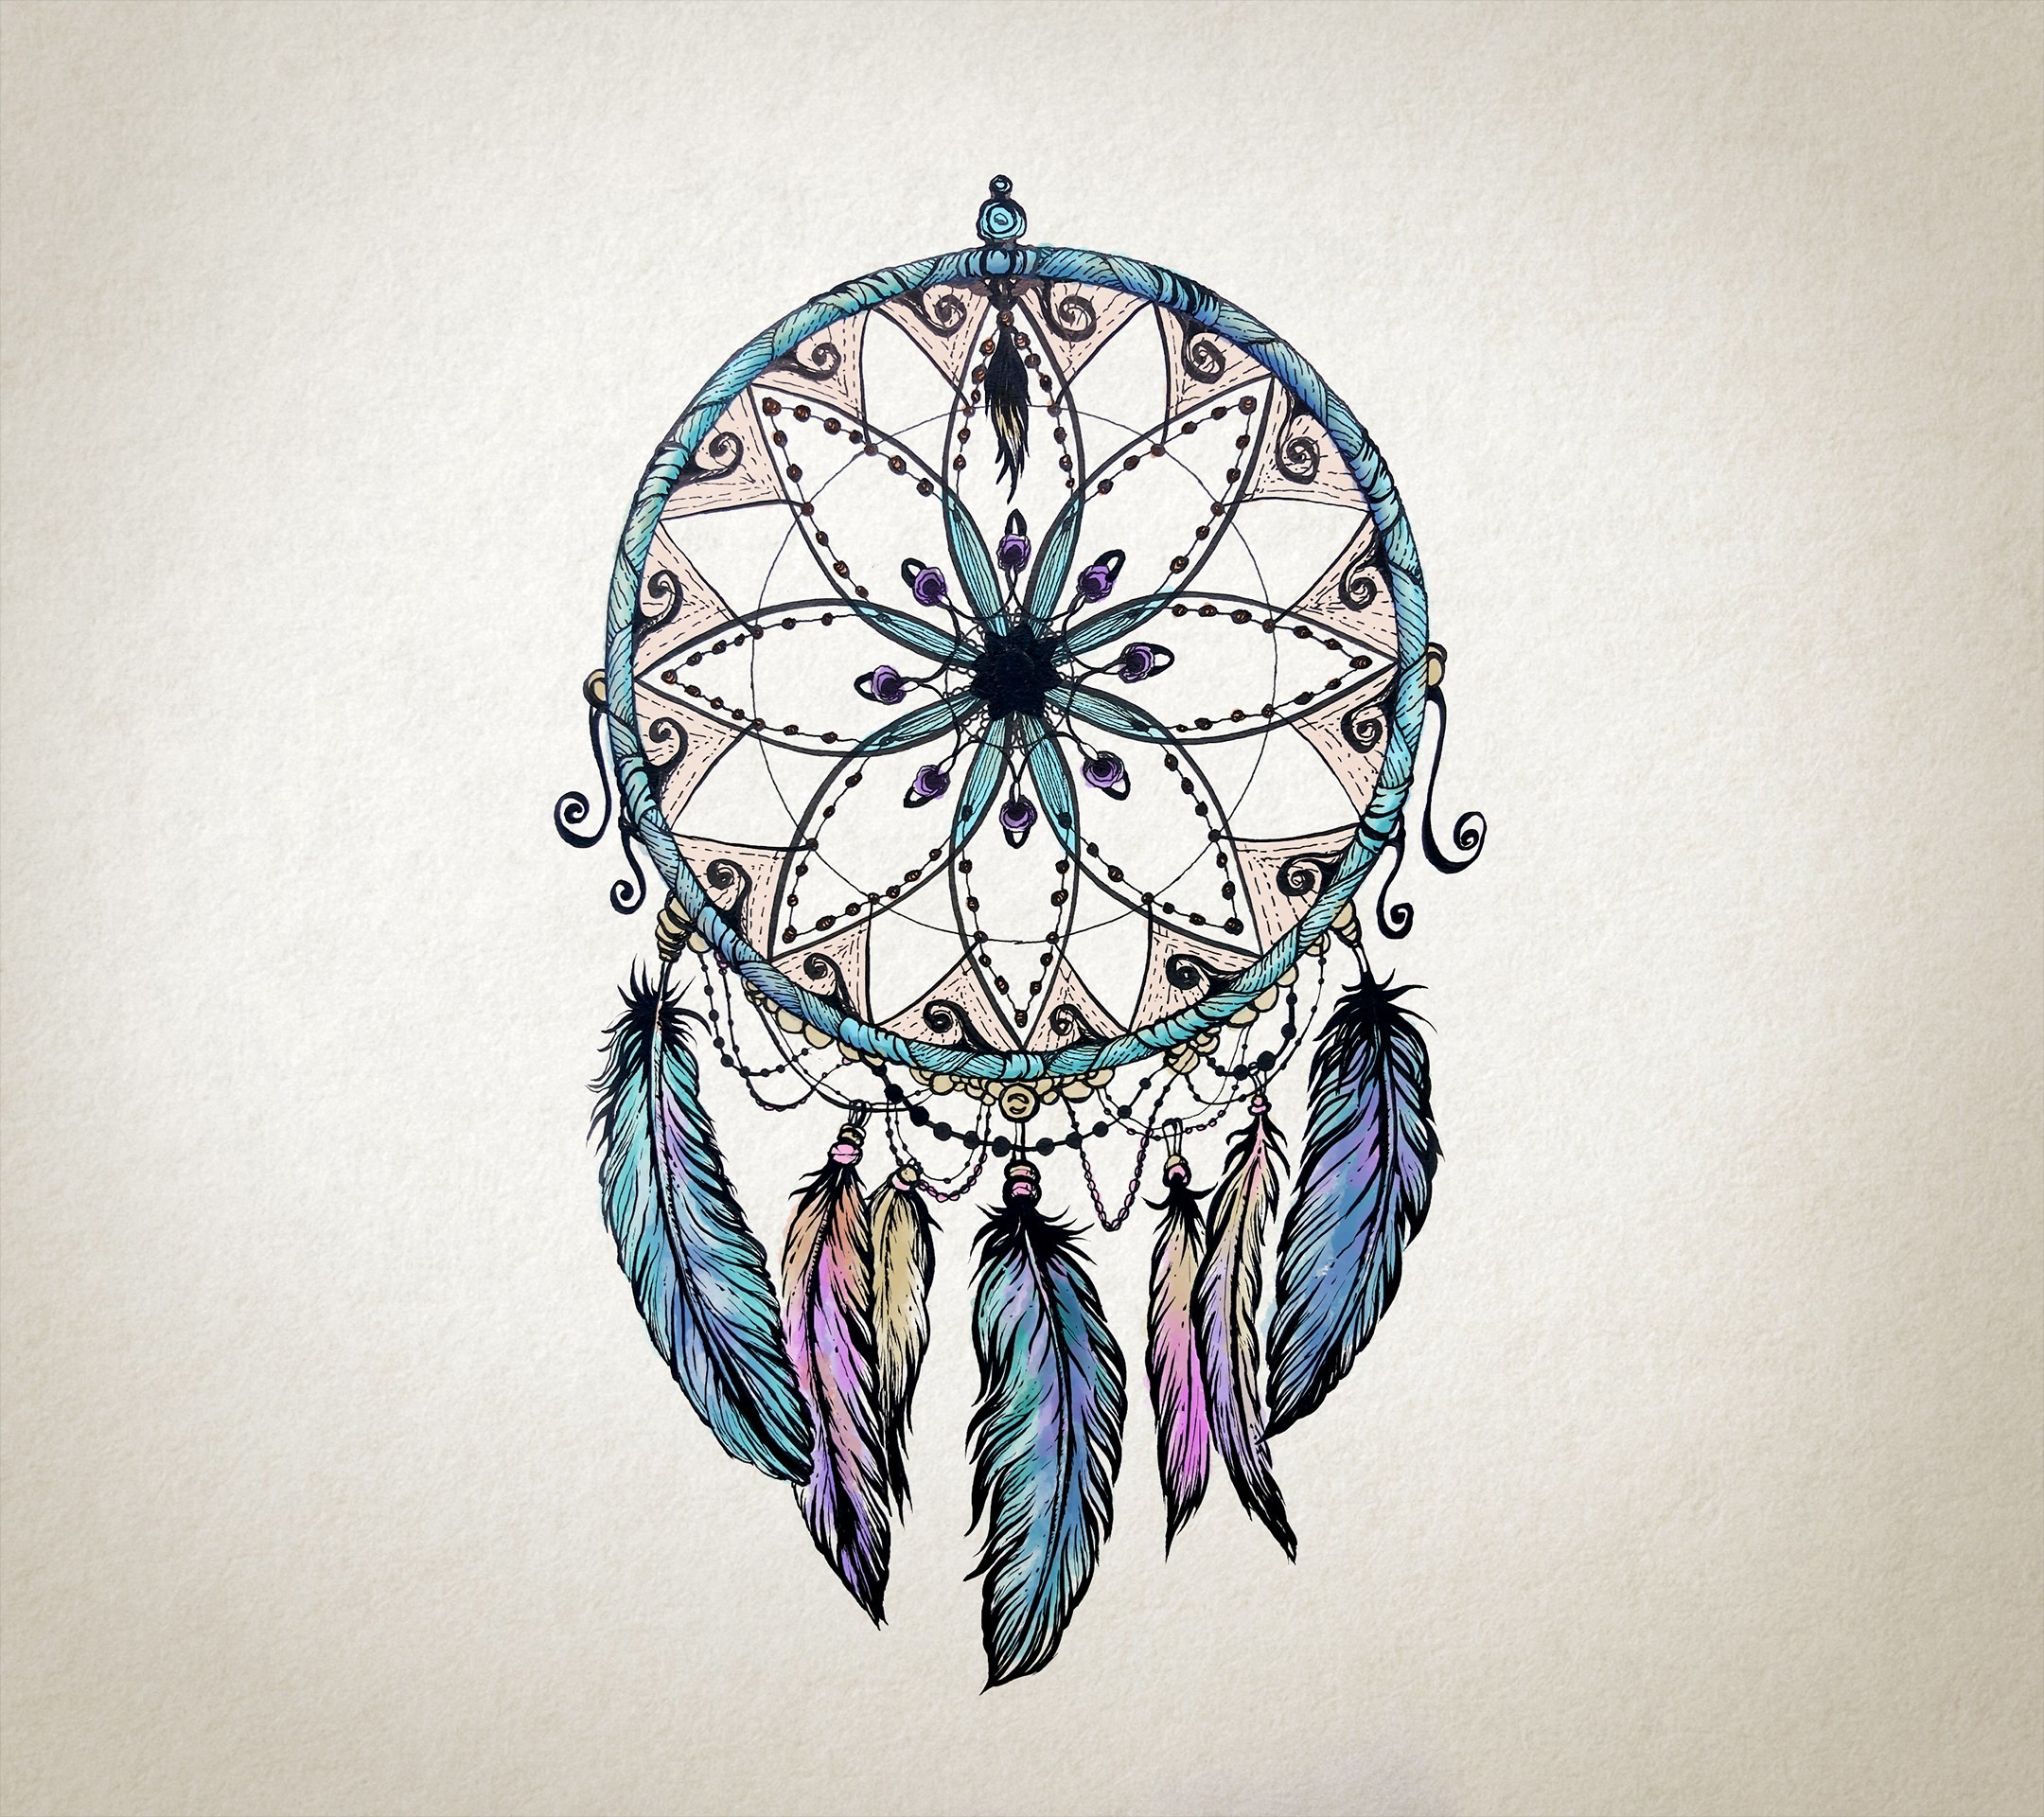 Dreamcatcher wallpaper hd 70 images 2560x1440 desktop download dreamcatcher backgrounds voltagebd